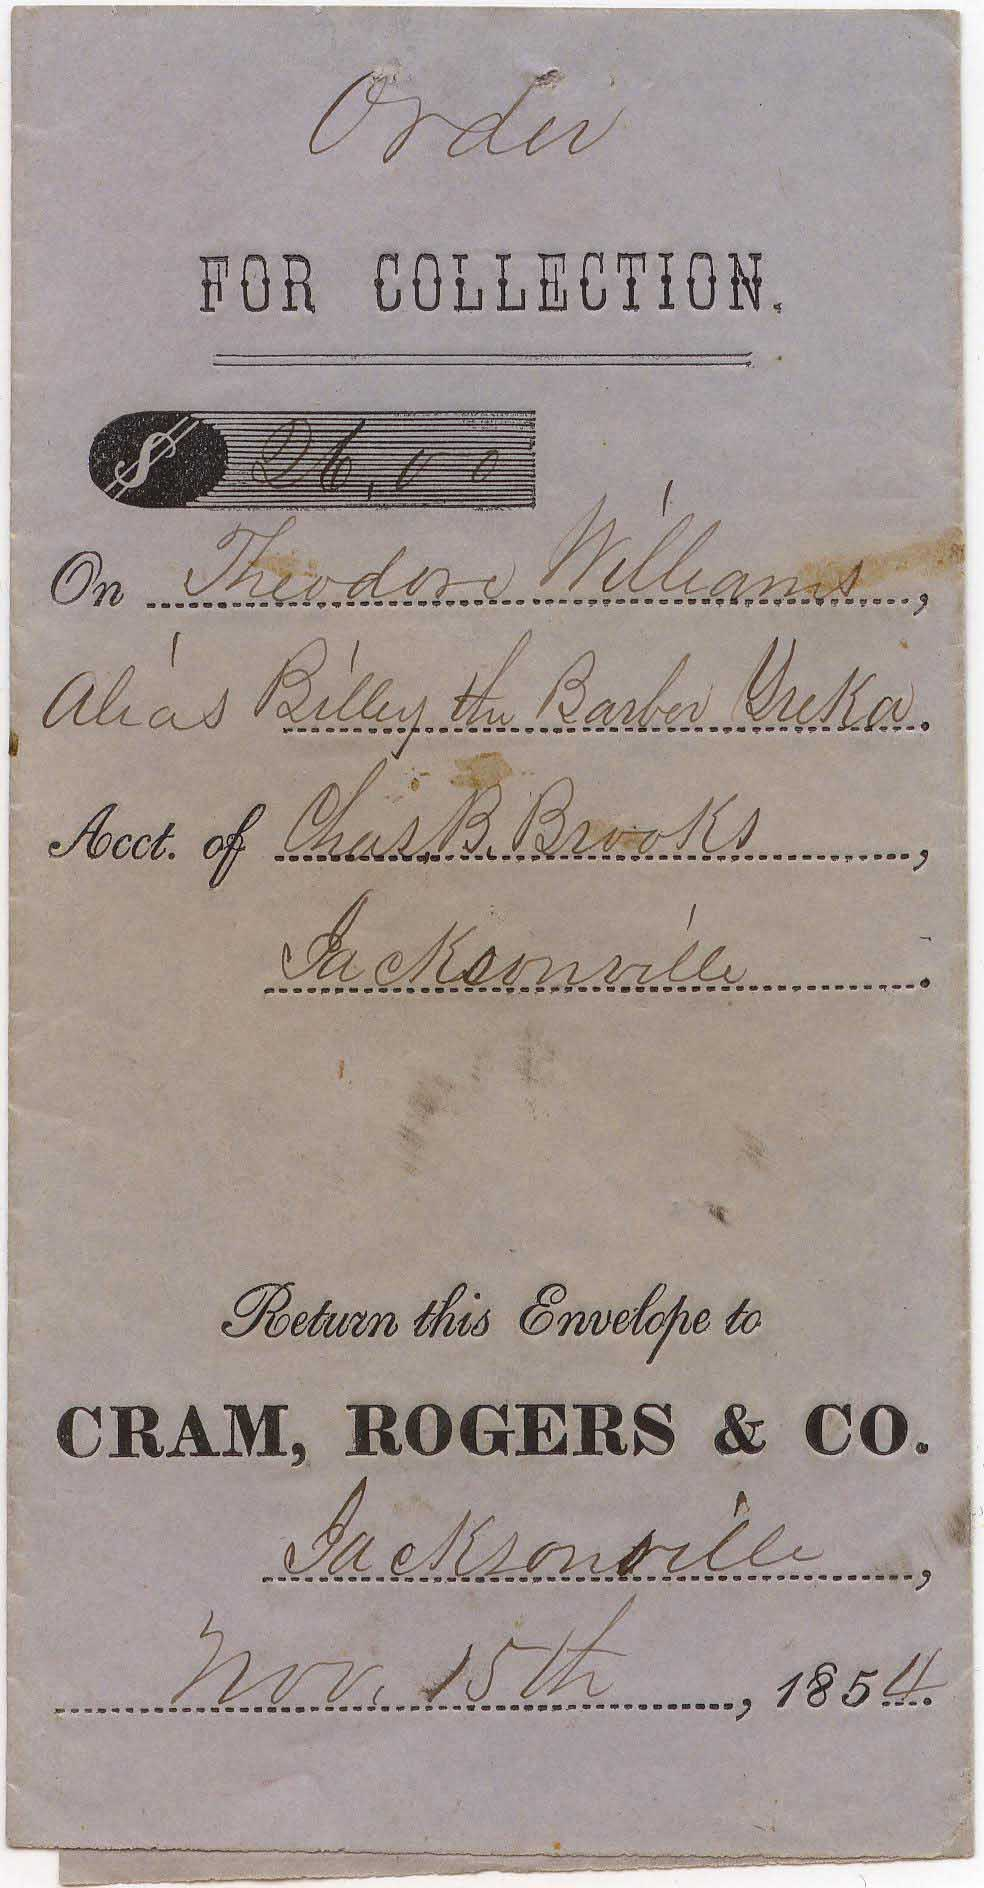 CramRogers Cash Envelope 15Nov1854 0903 Mader